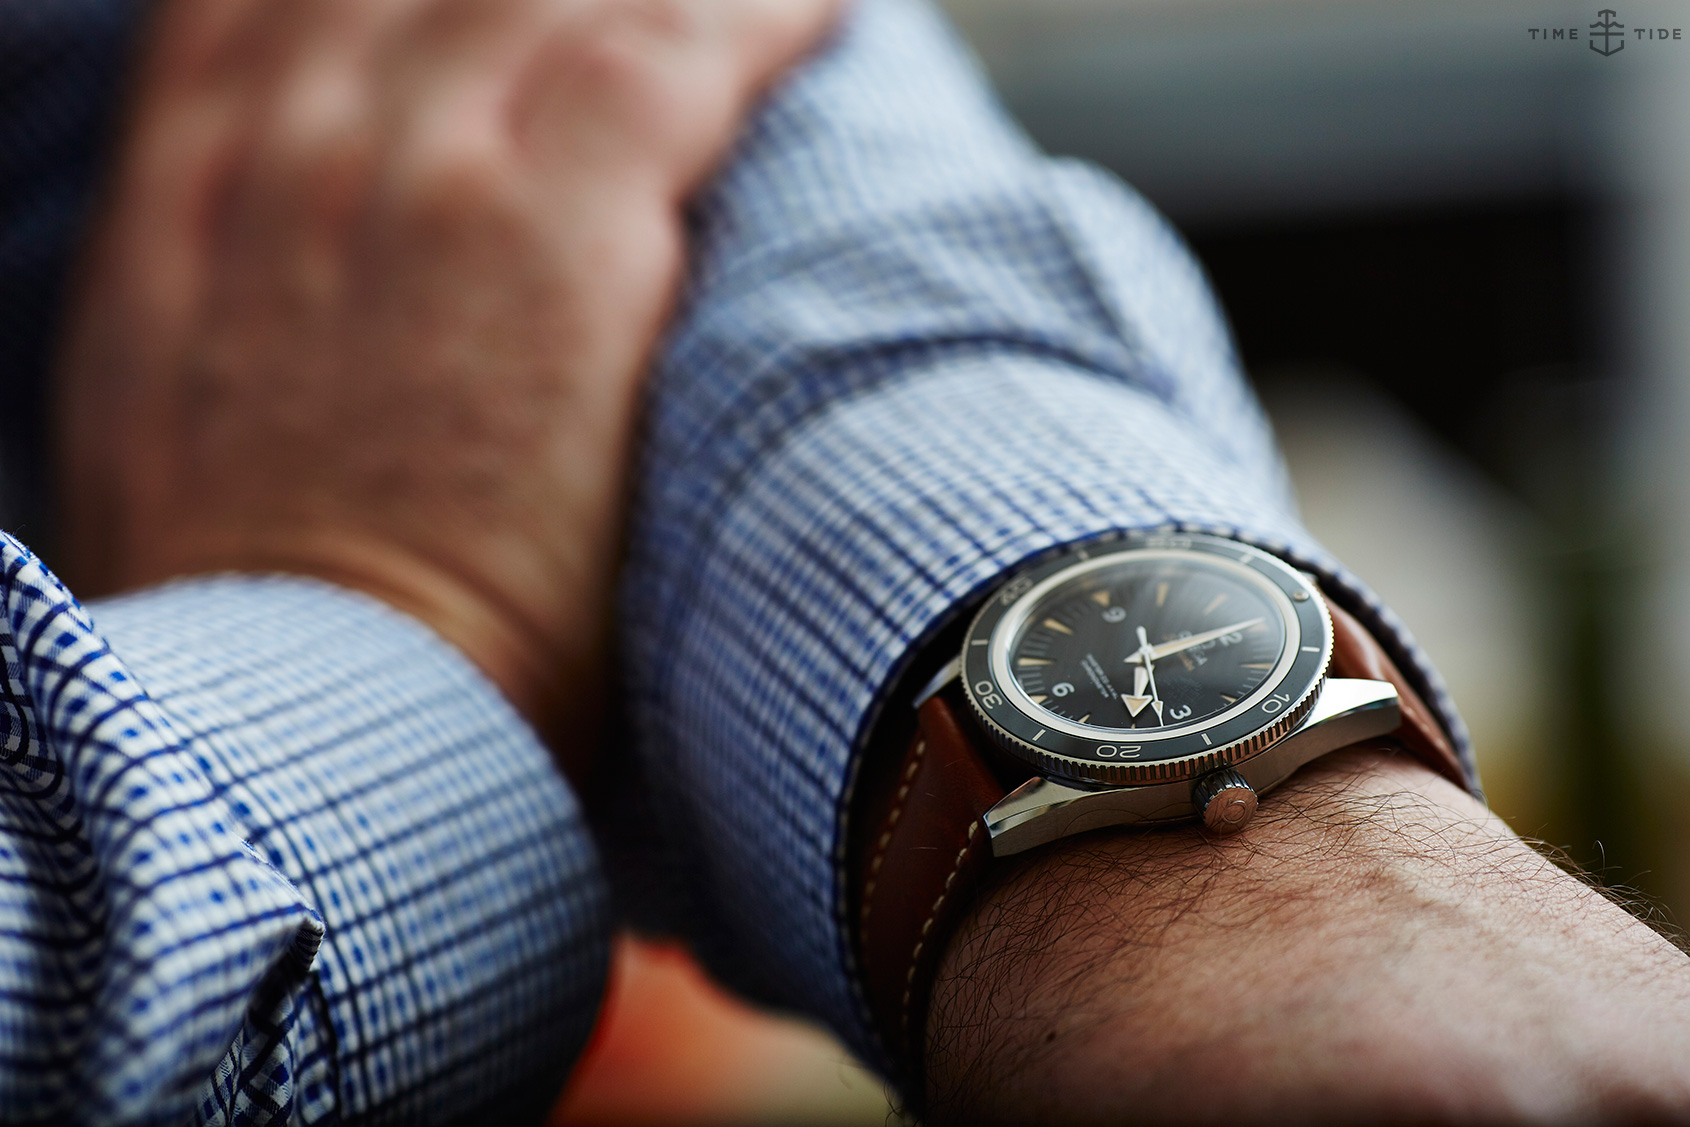 In Depth The Omega Seamaster 300 Master Co Axial Time